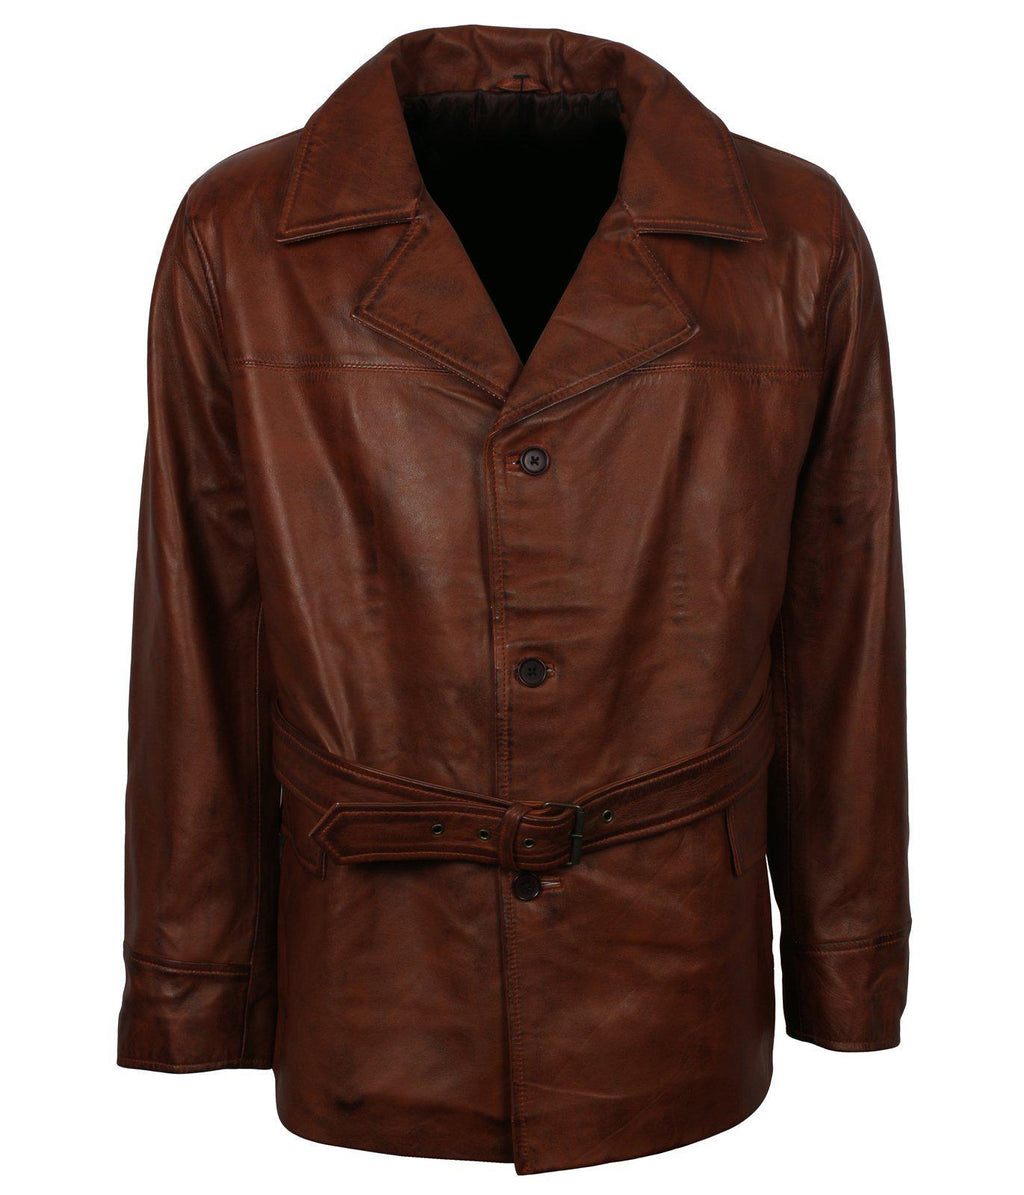 Brown Leather Trench Coat with Belt